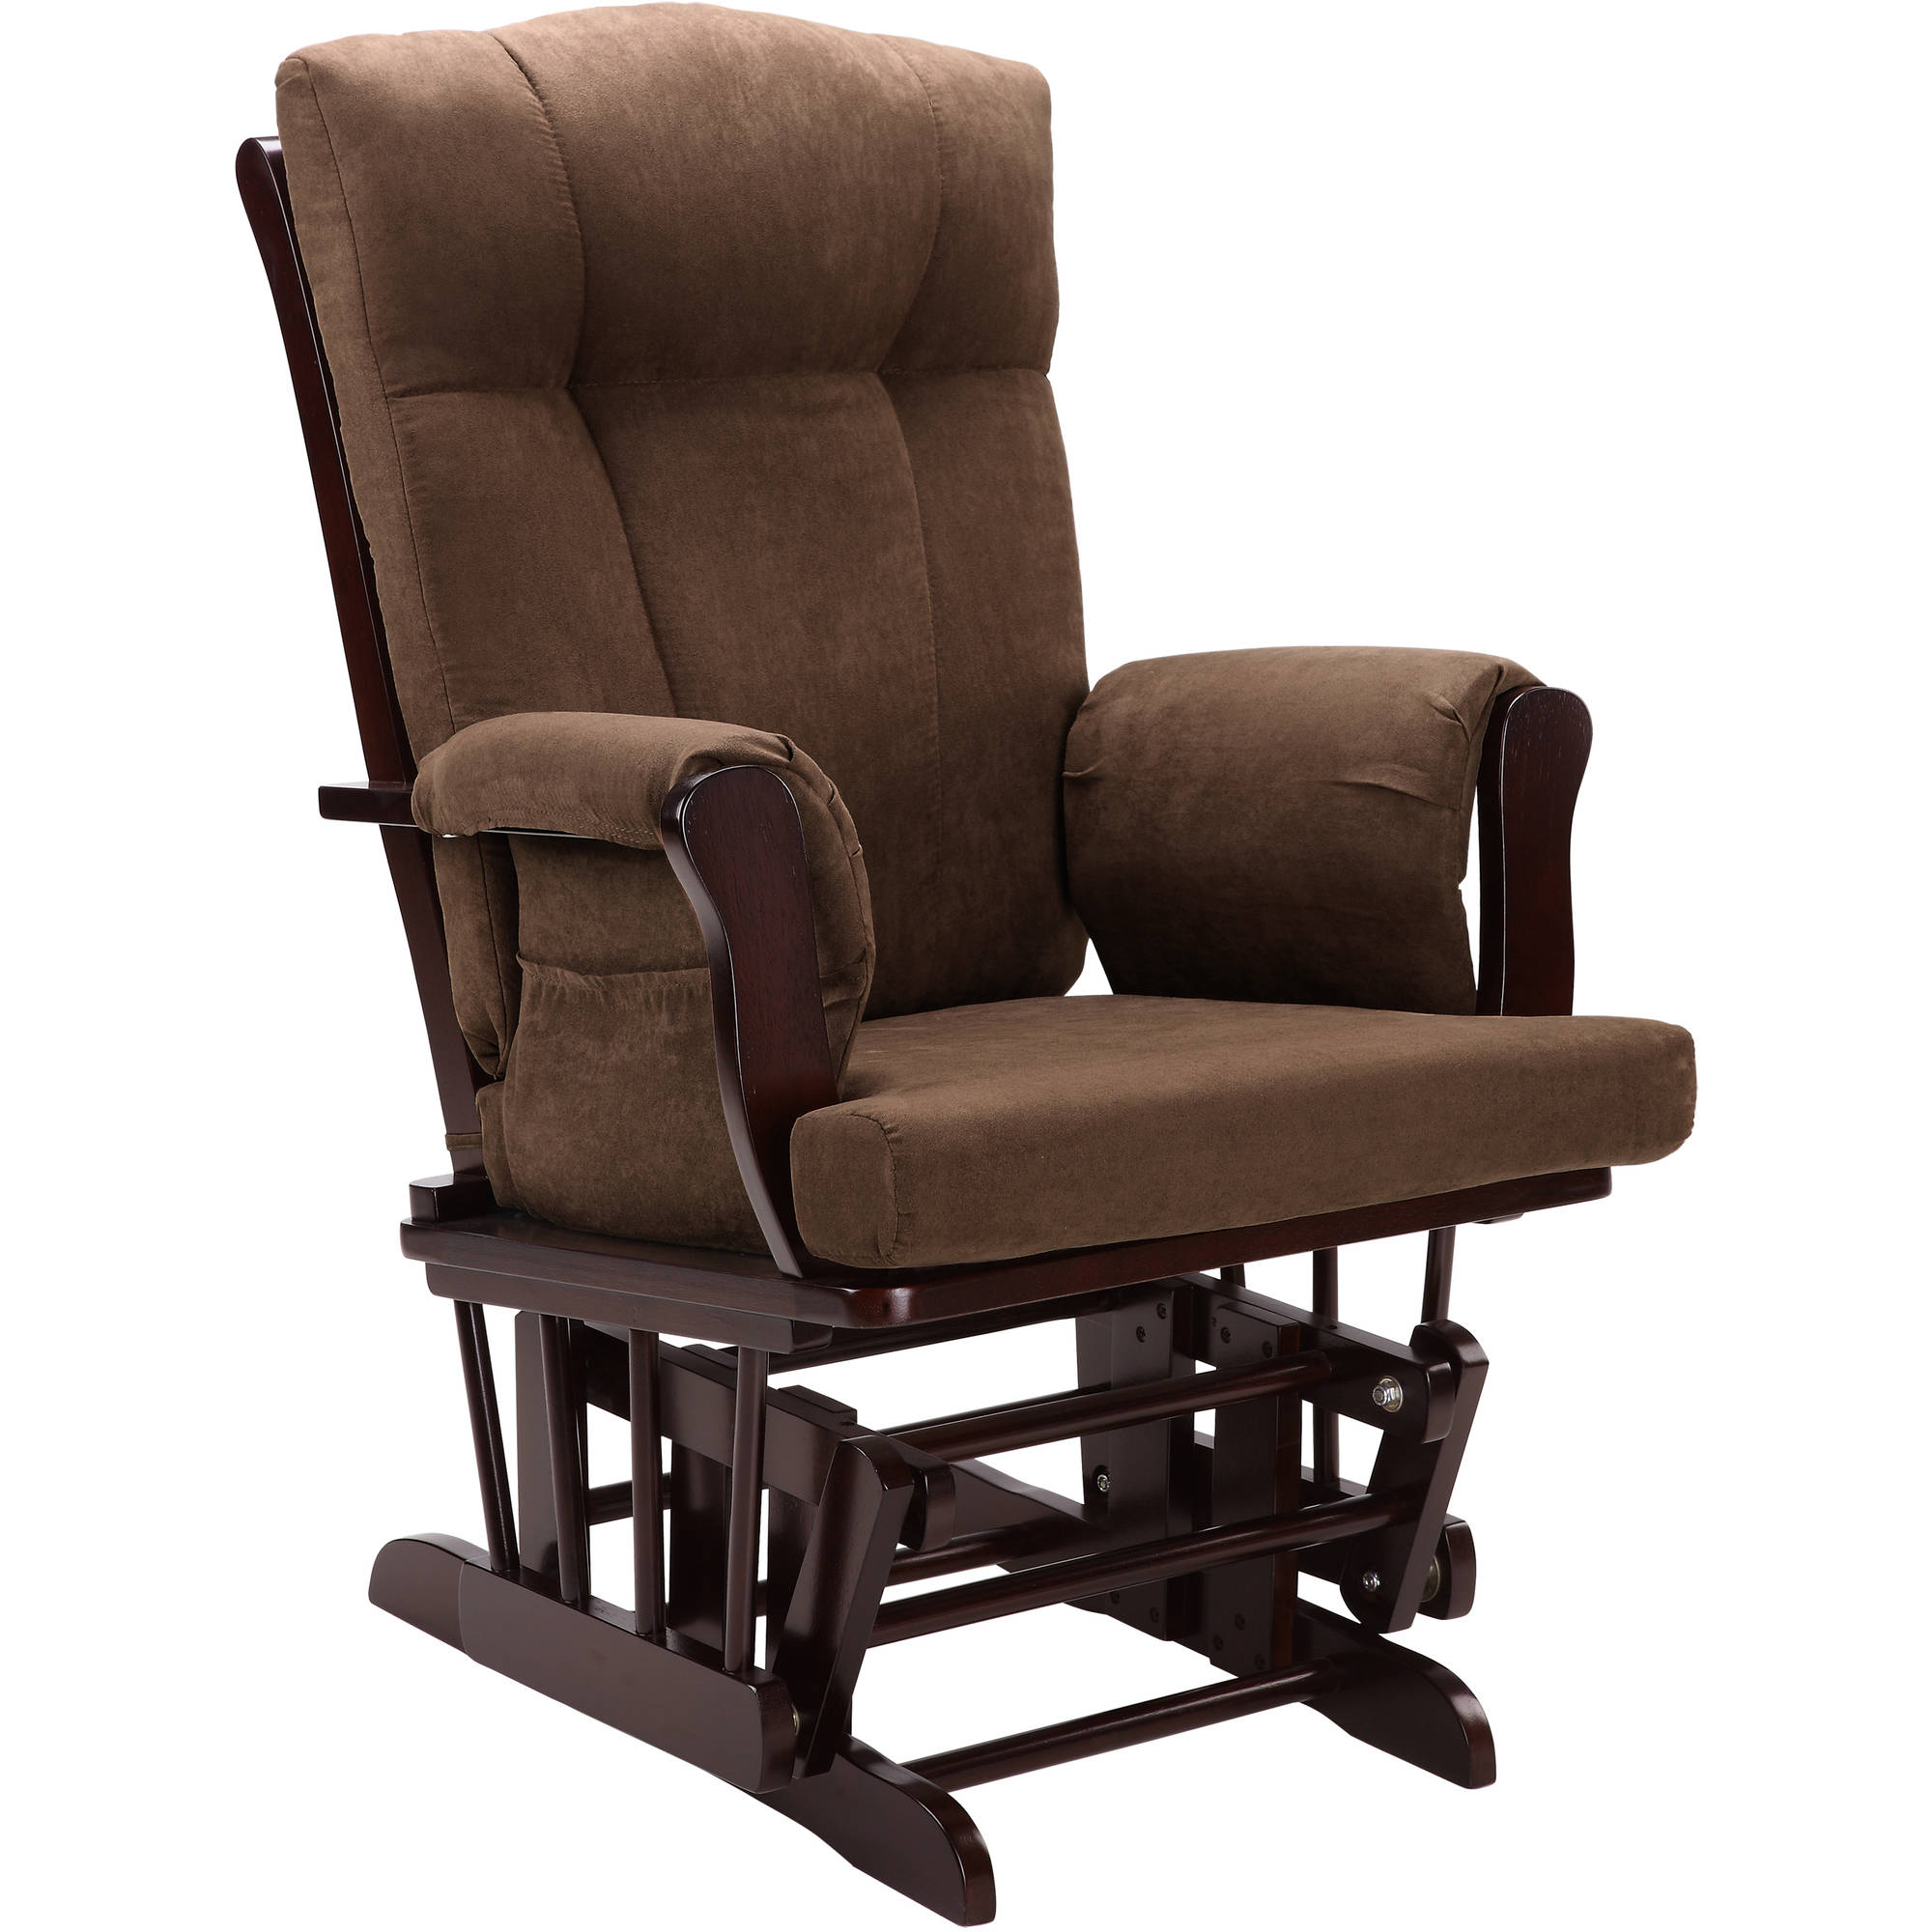 Baby Relax Glider Rocker and Ottoman Espresso with Chocolate Cushions